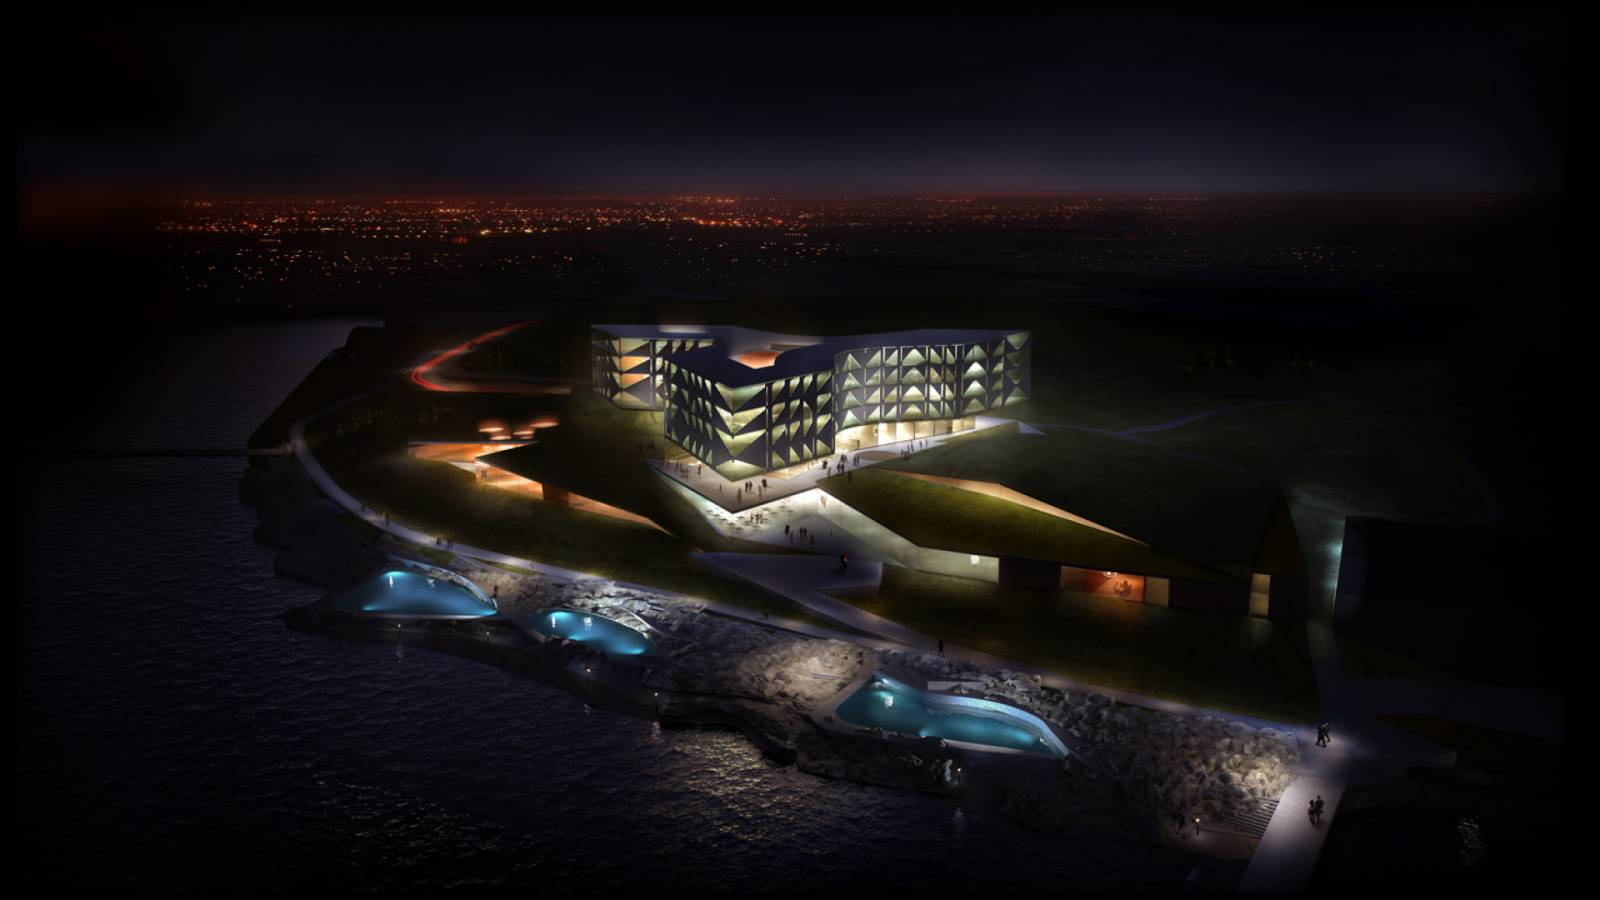 LERNACKEN BY NIGHT - Lernacken Hotel - SPOL Architects